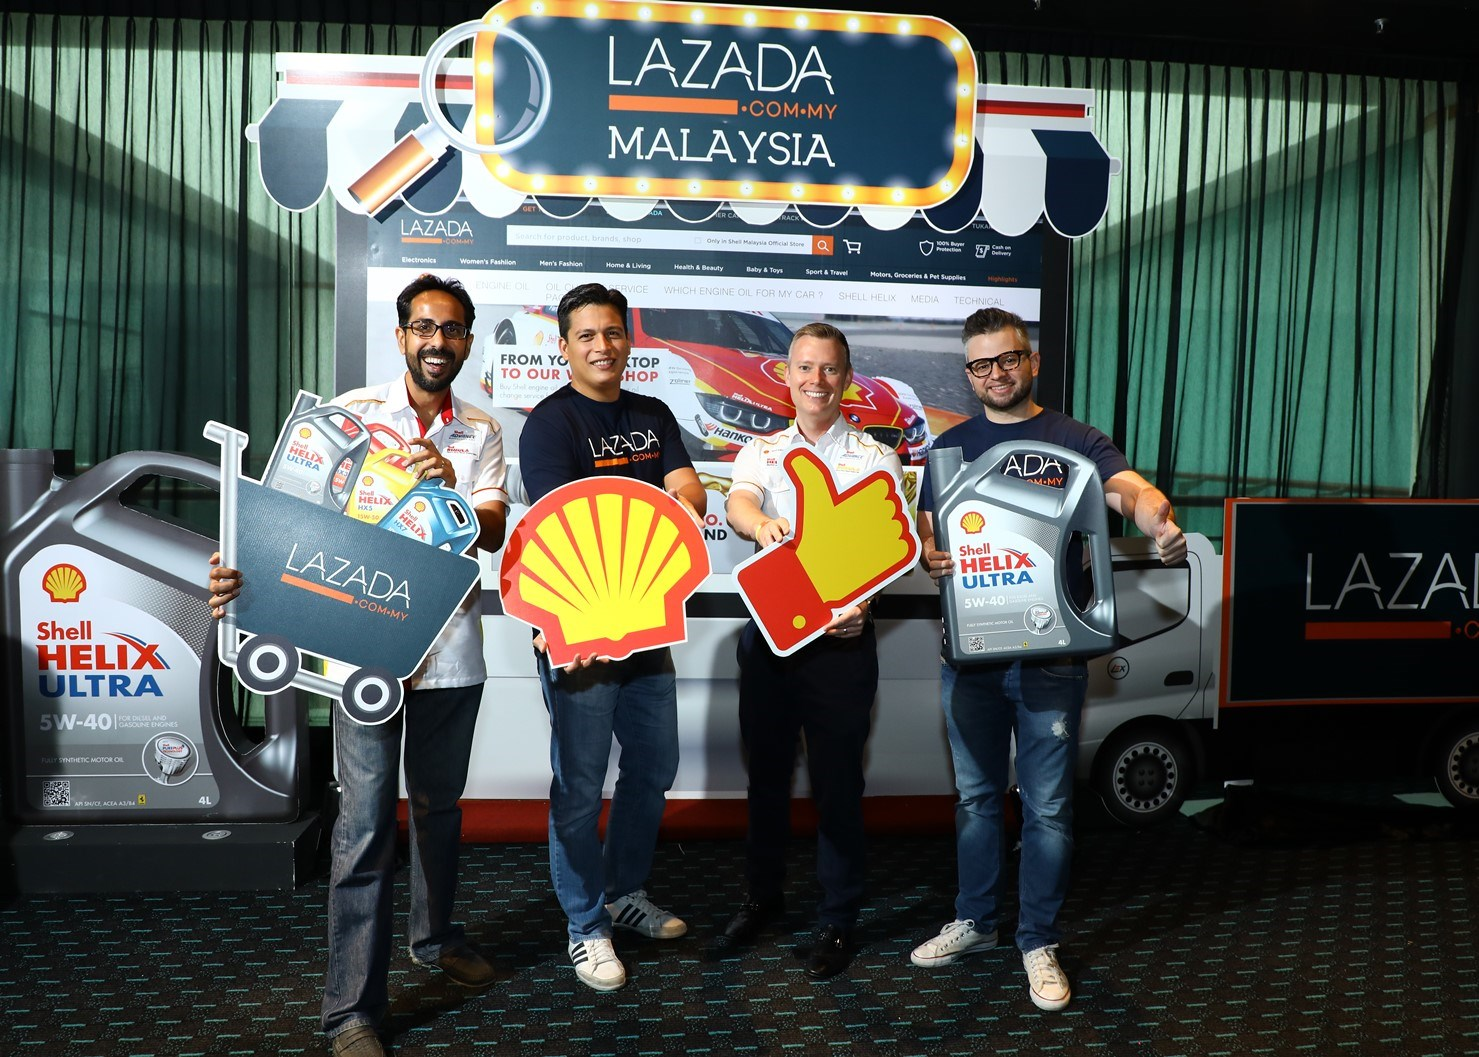 Shell Malaysia Launches First Official Shell Online Store in Malaysia on Lazada